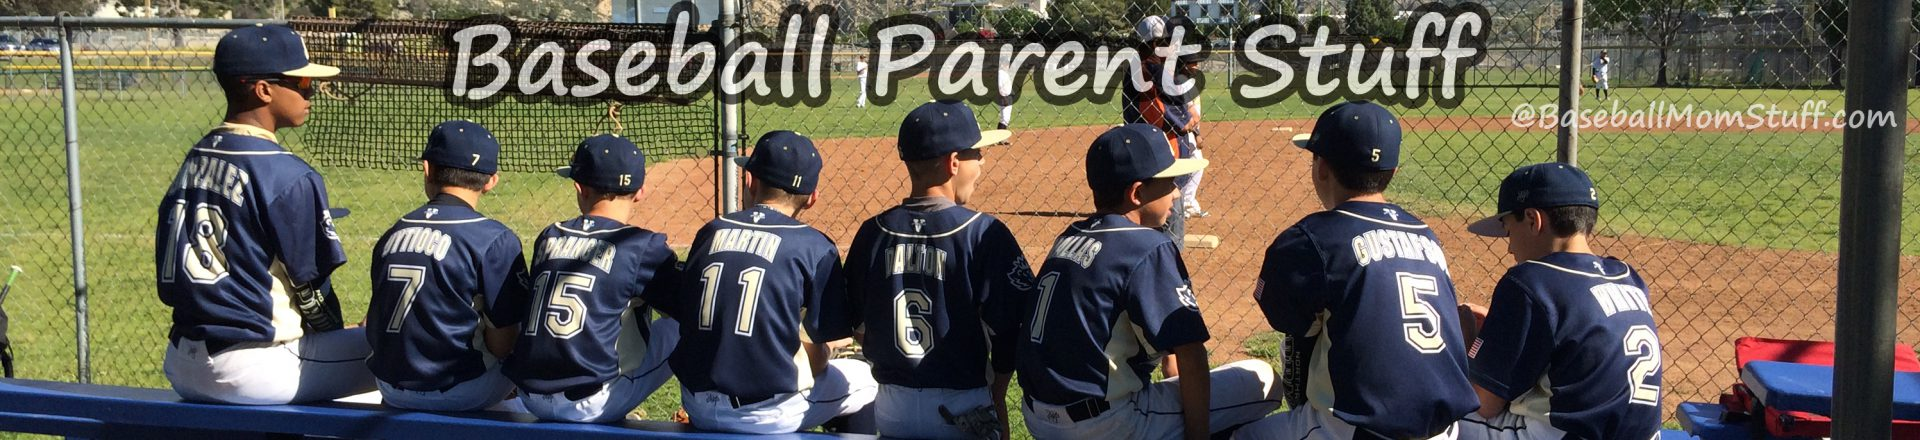 5 Practical Life Skills Learned from Playing Baseball